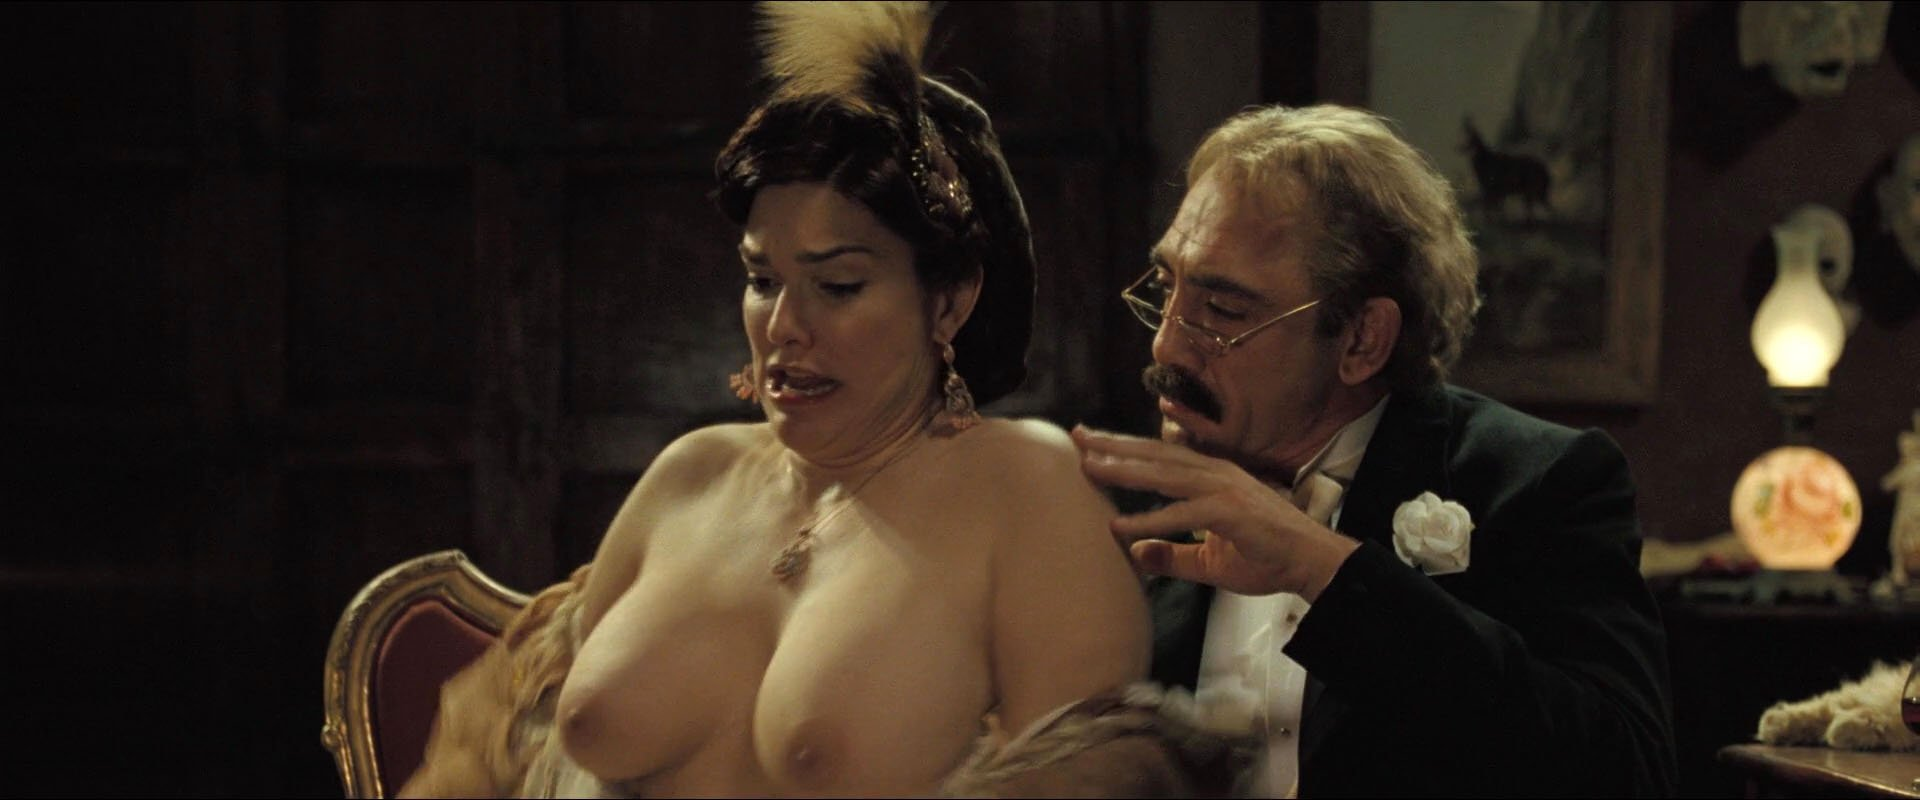 Laura Harring nude - Love in the Time of Cholera (2007)